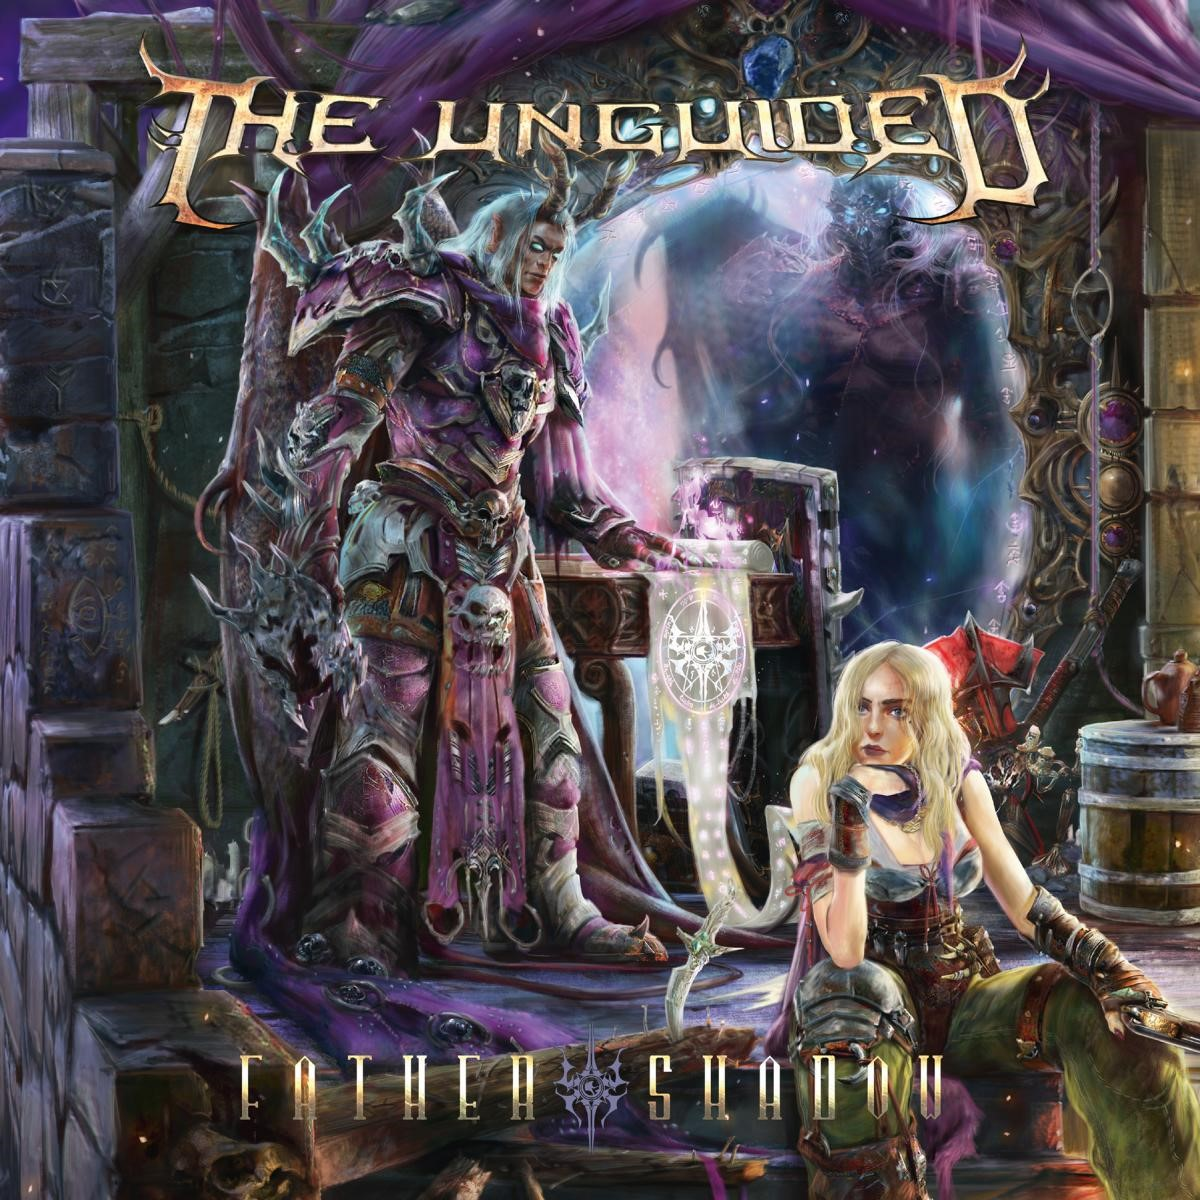 the unguided father shadow album cover